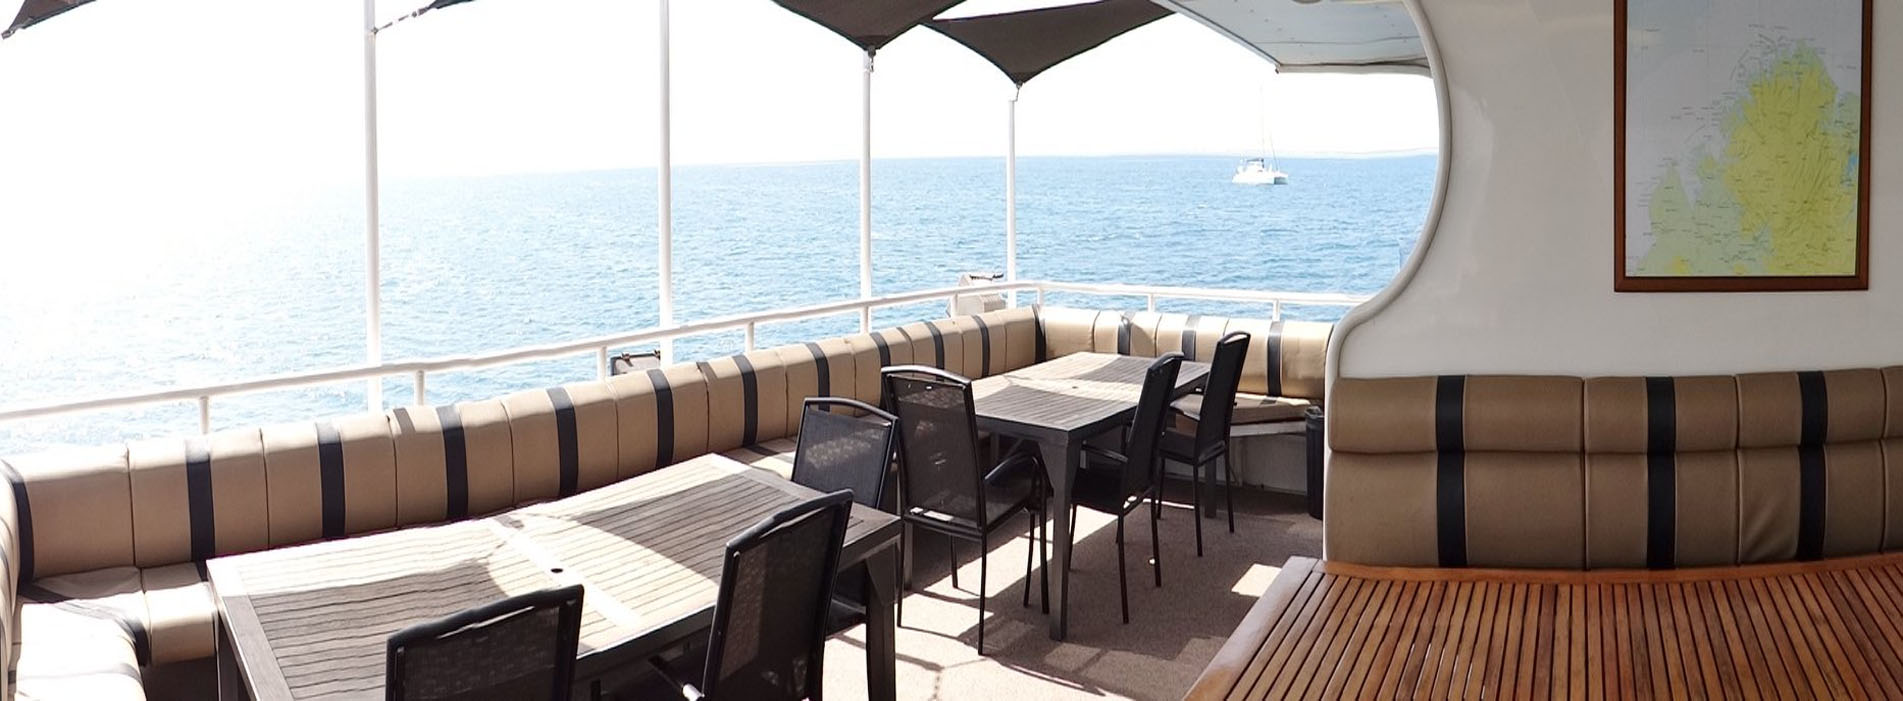 ODYSSEY boat charters perth wa upper deck bar area